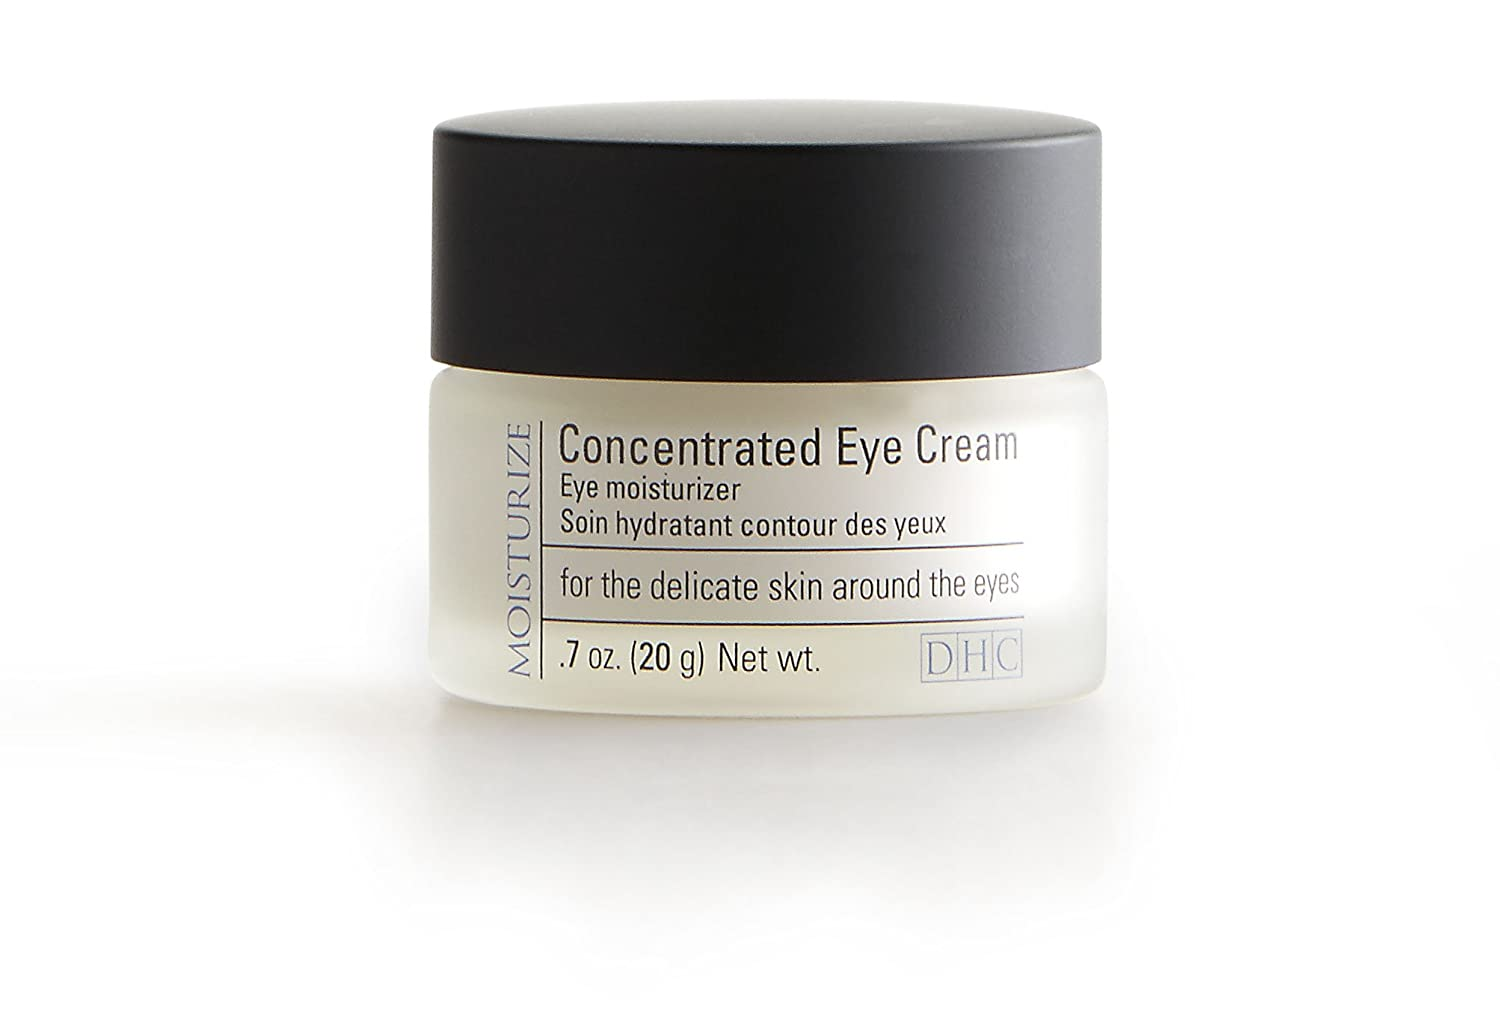 DHC Concentrated Eye Cream 0.7 oz. Net wt MEC